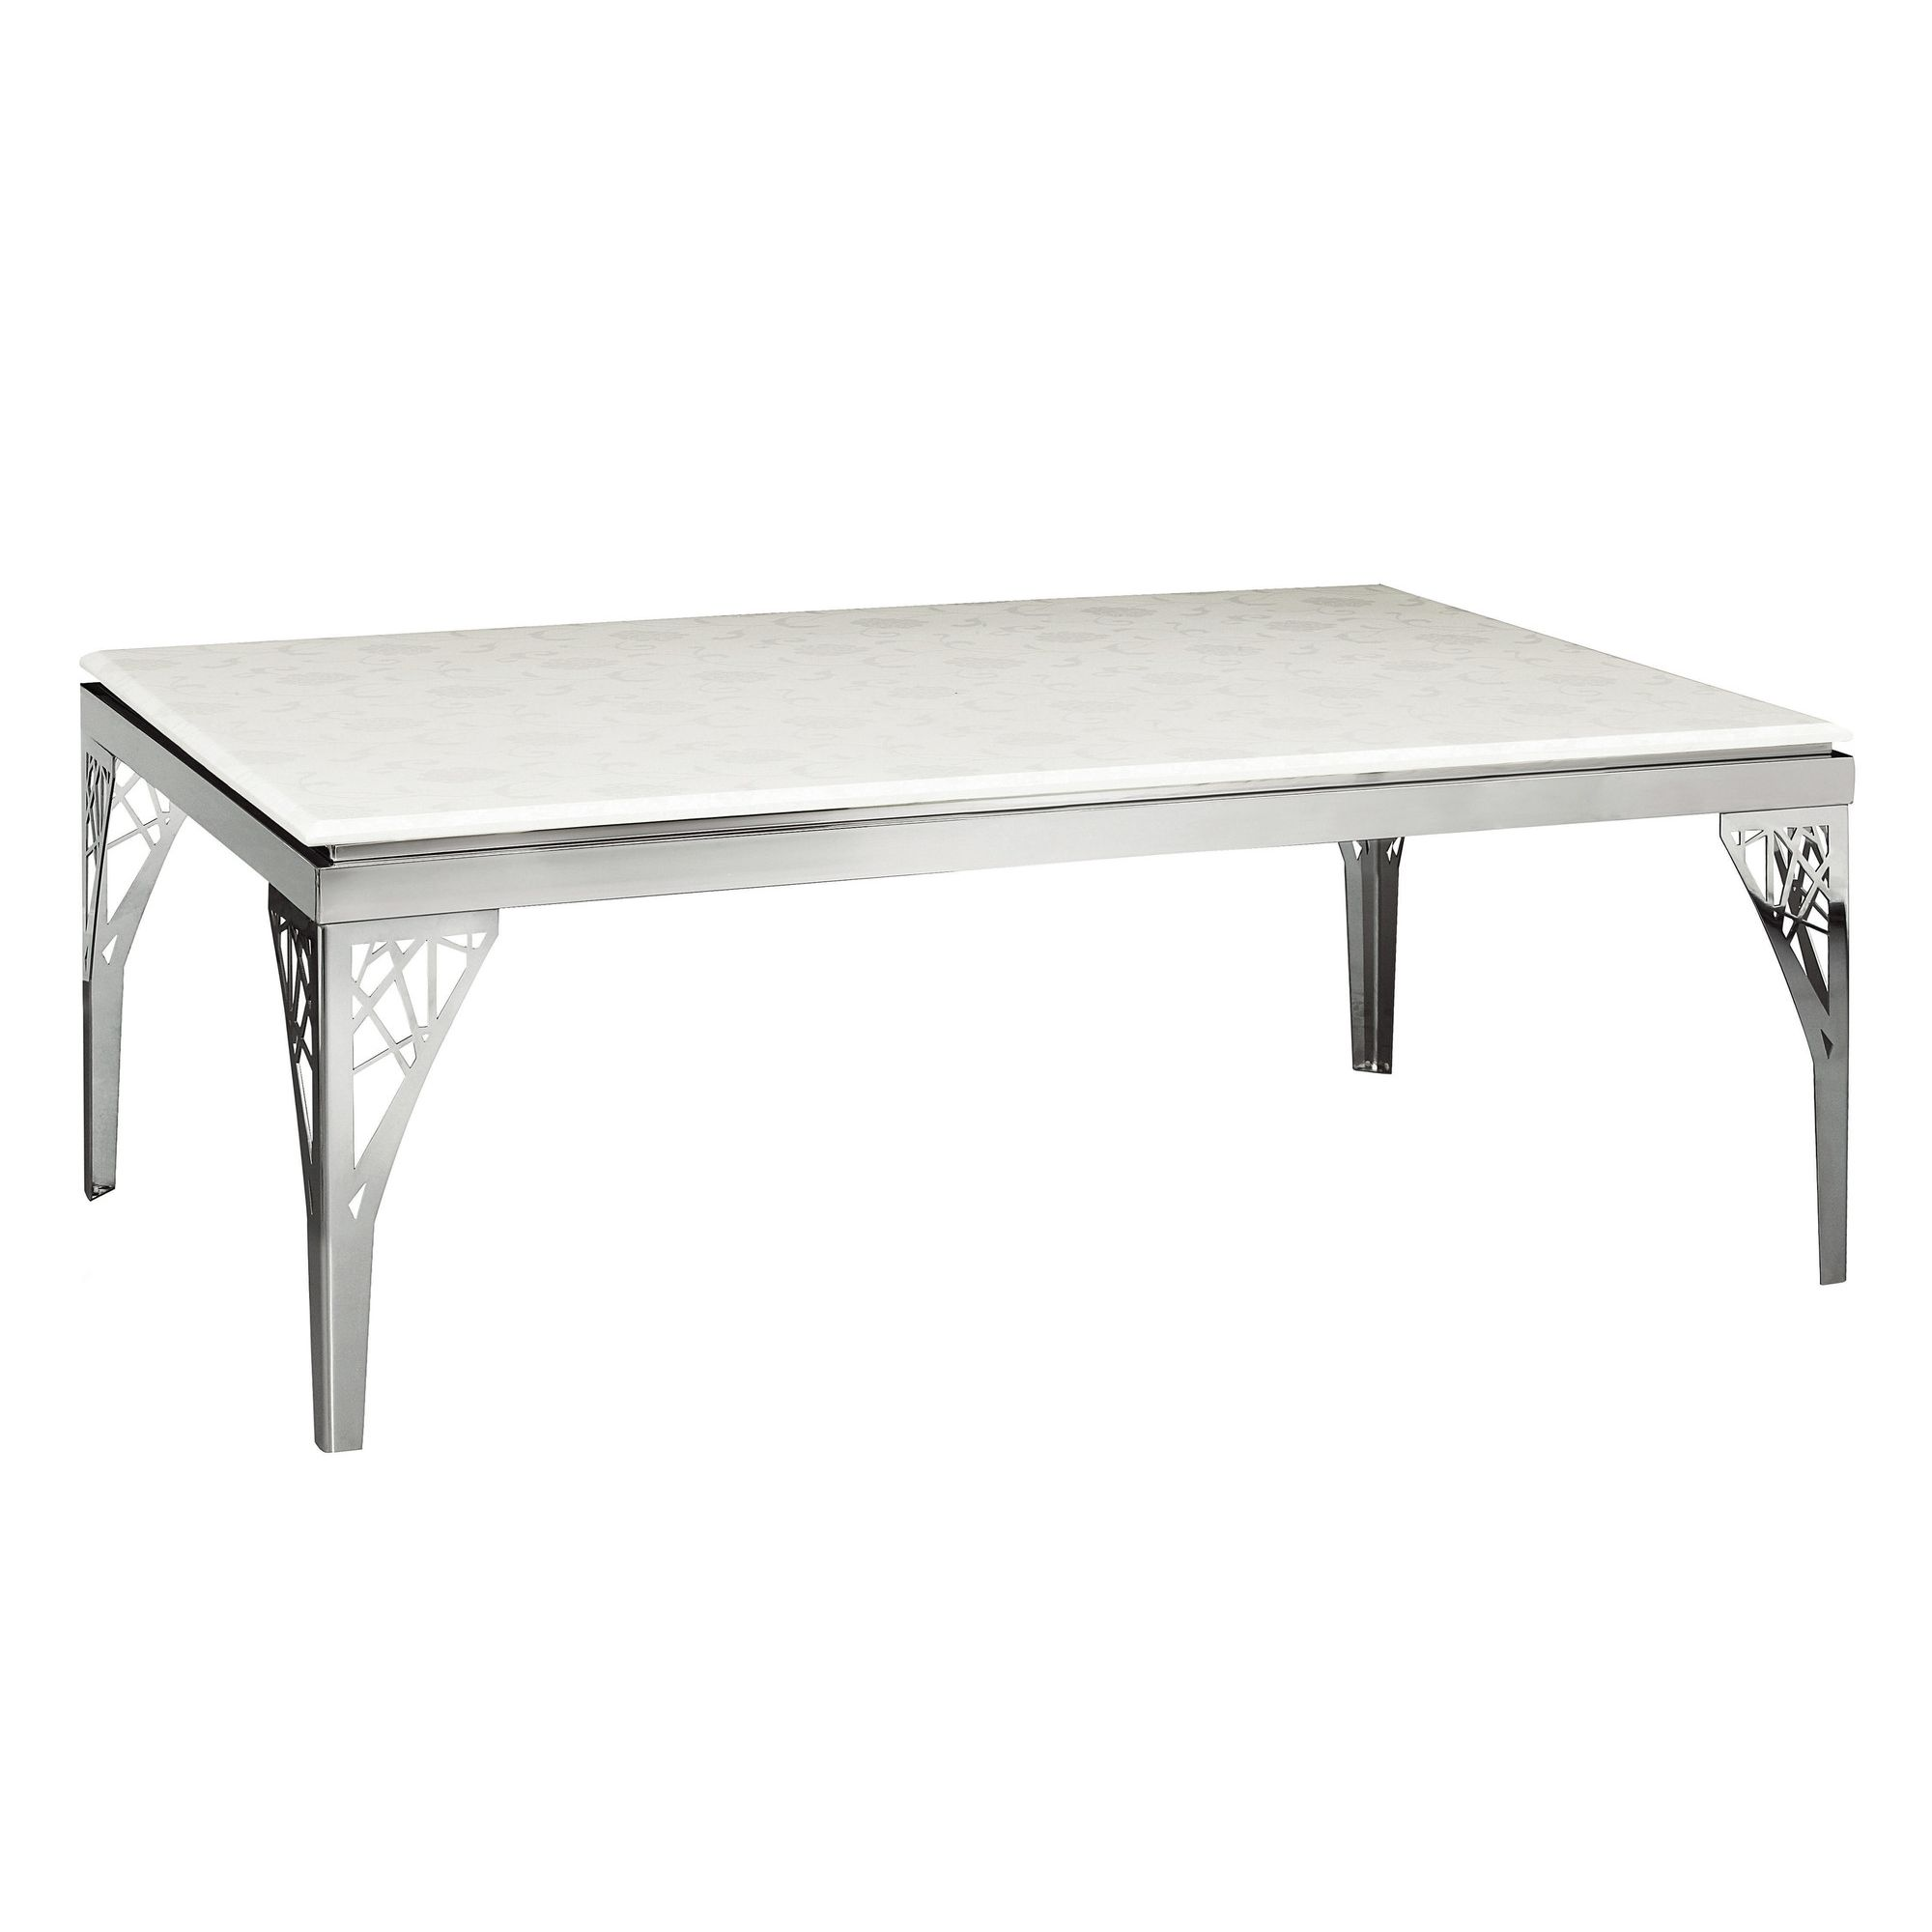 Premier Housewares White Marble Coffee Table with Stainless Steel Legs at Tesco Direct